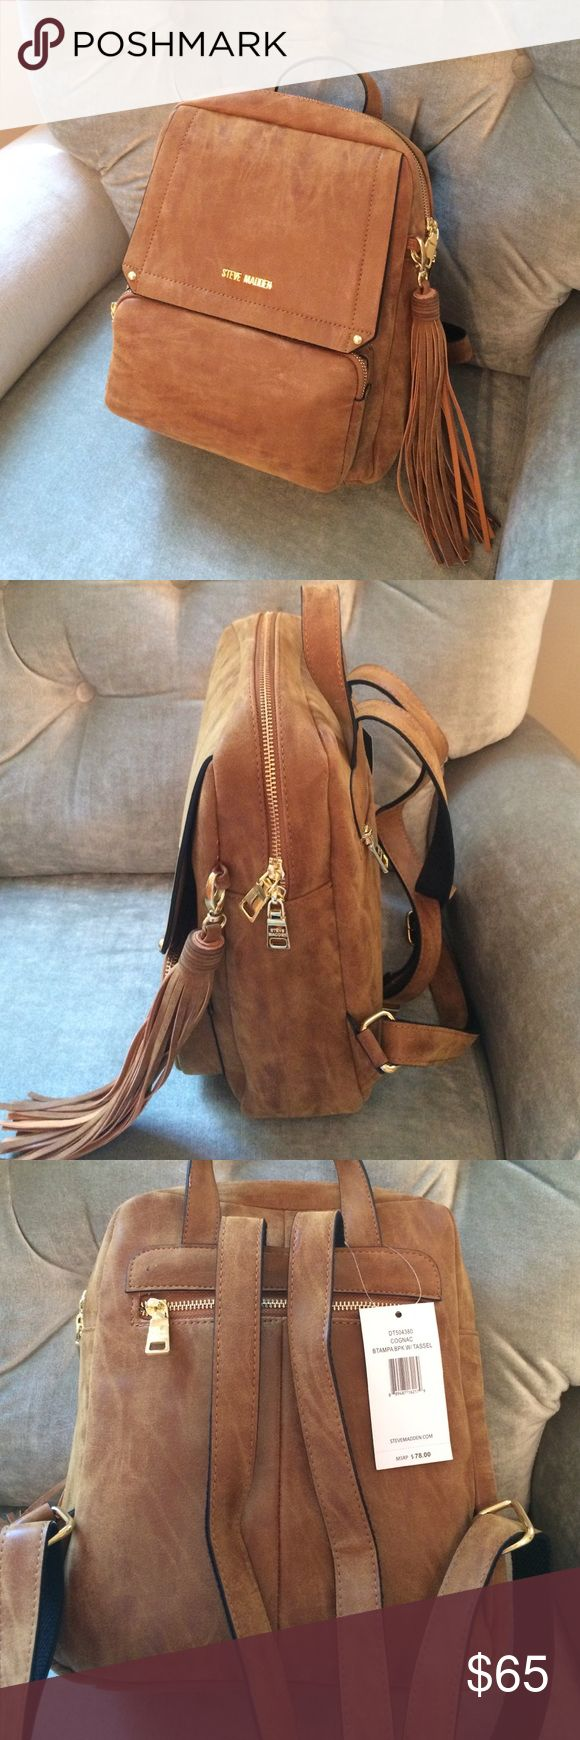 Steve Madden Cognac Tampa Backpack Small Backpack with two front pockets, adjustable straps and gold detailing. Suede-like material. Brand new with tags. Fringe Tassel Detail, back zippered pouch. Steve Madden Bags Backpacks